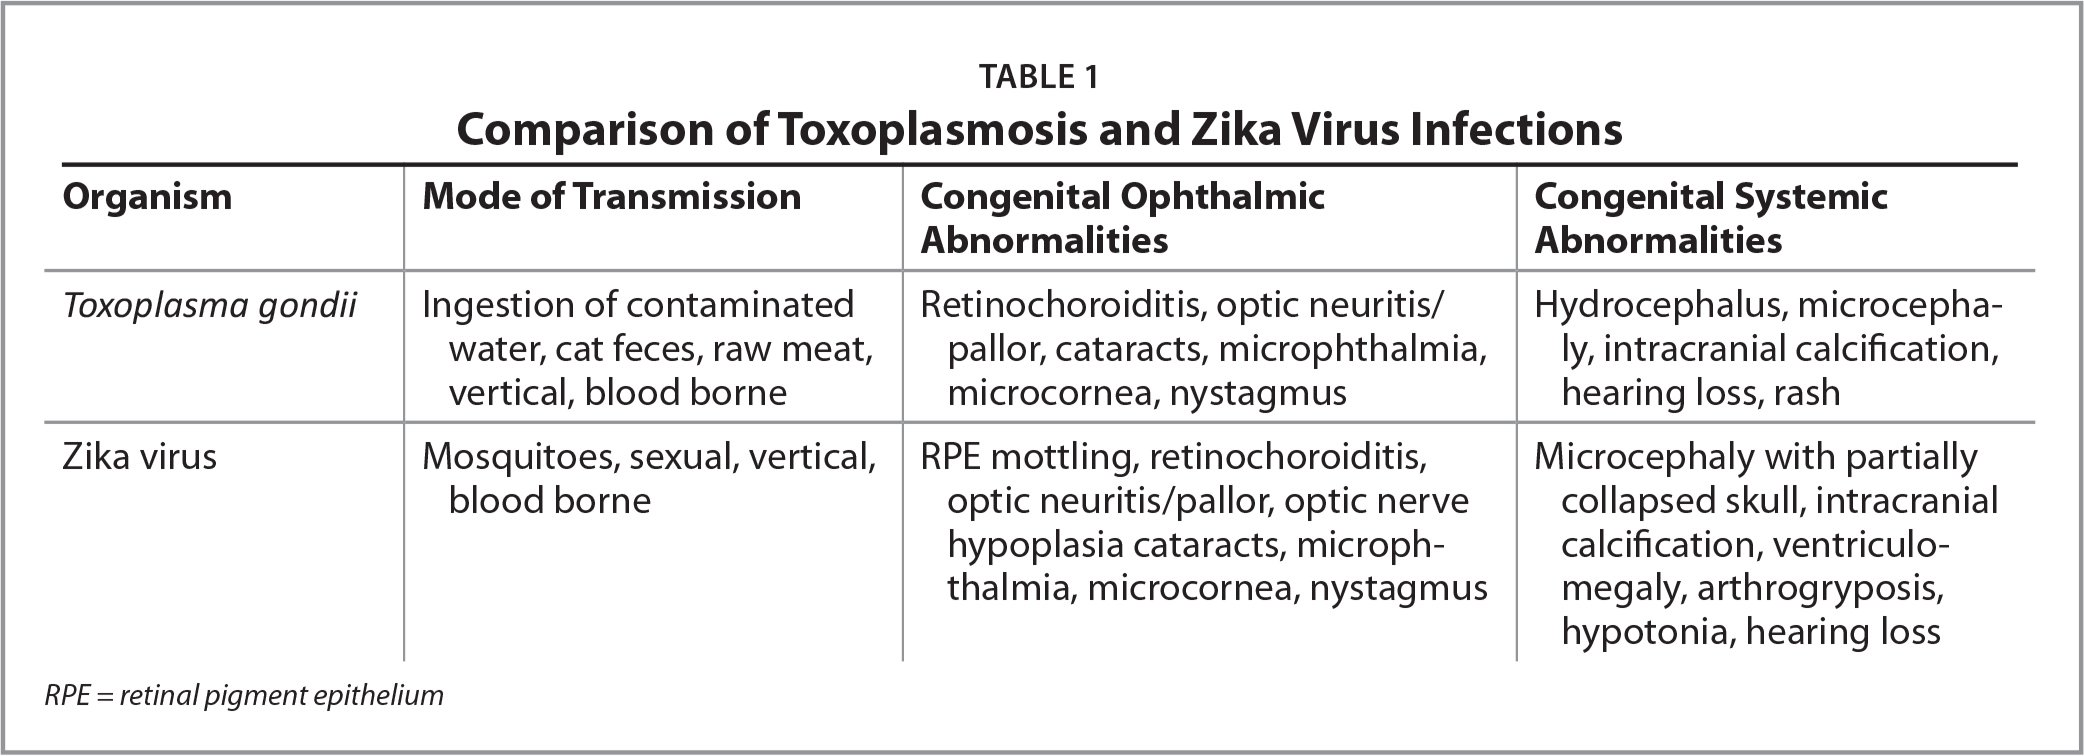 Comparison of Toxoplasmosis and Zika Virus Infections